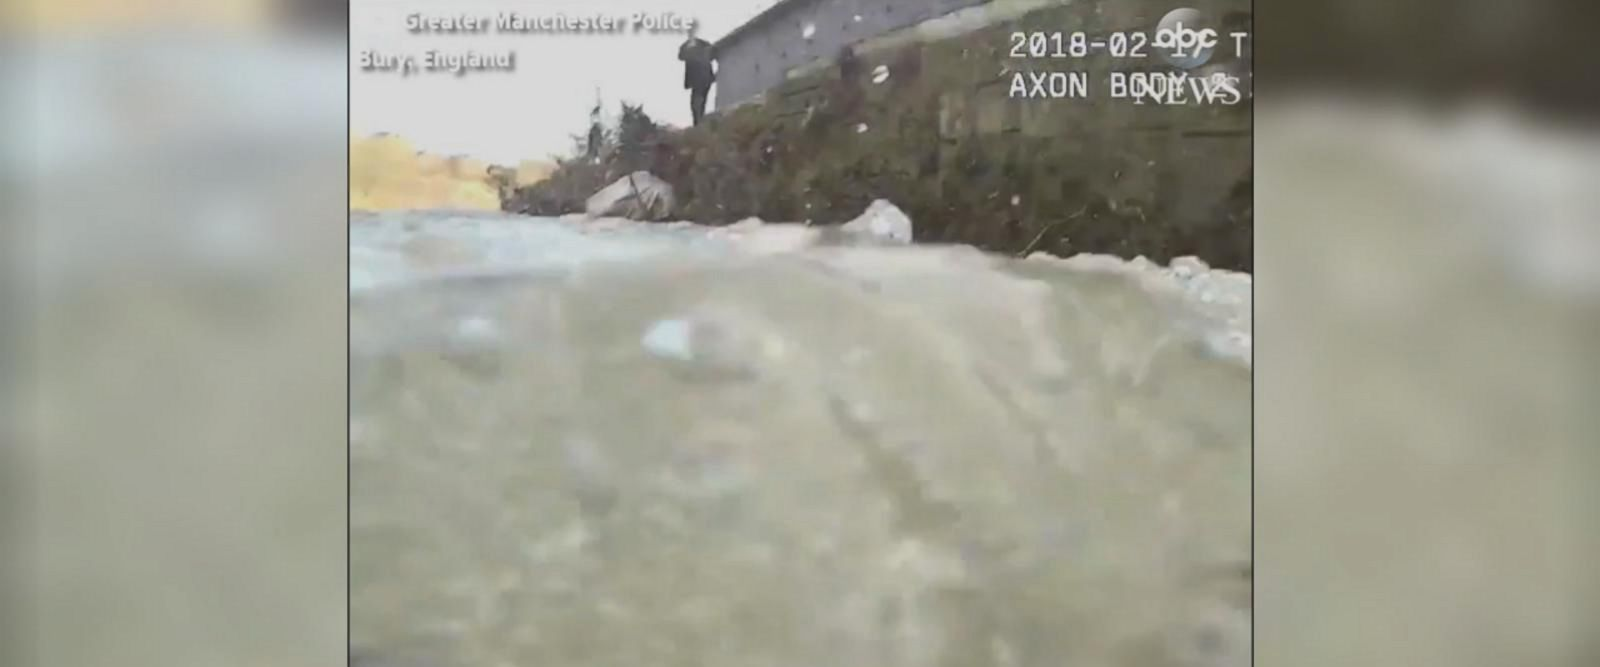 This police bodycam footage shows an officer jumping into a river to pull a distressed man to safety.